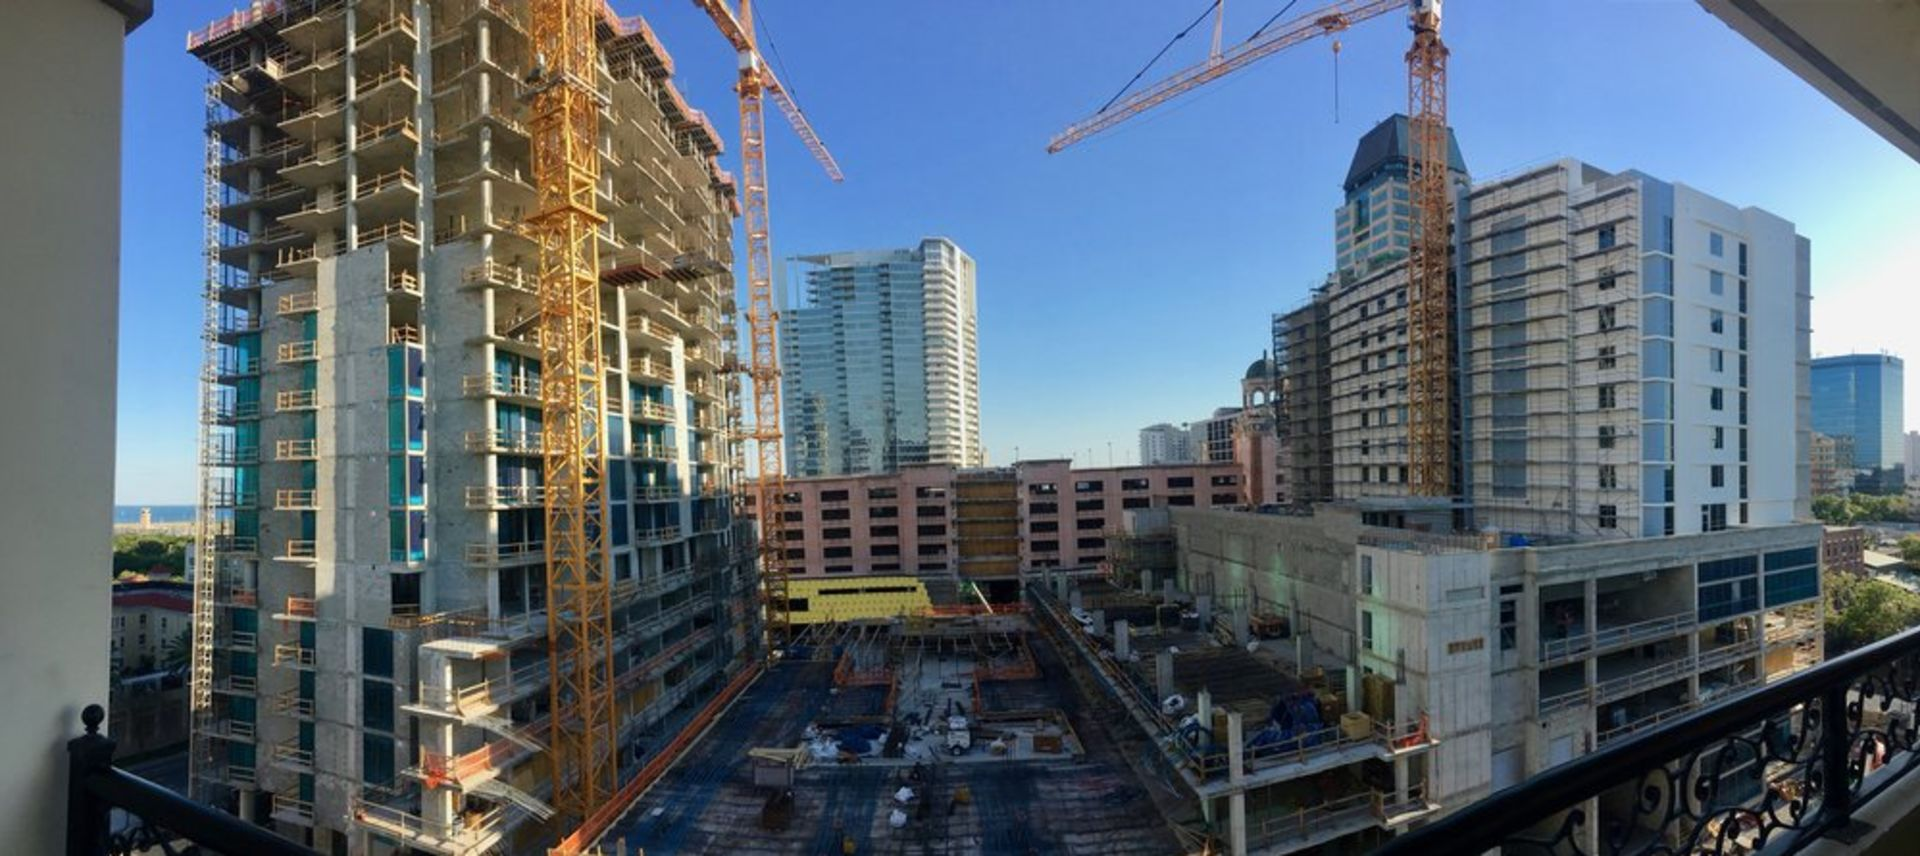 Cranes Cranes, Everywhere Cranes: What's With all the Construction?